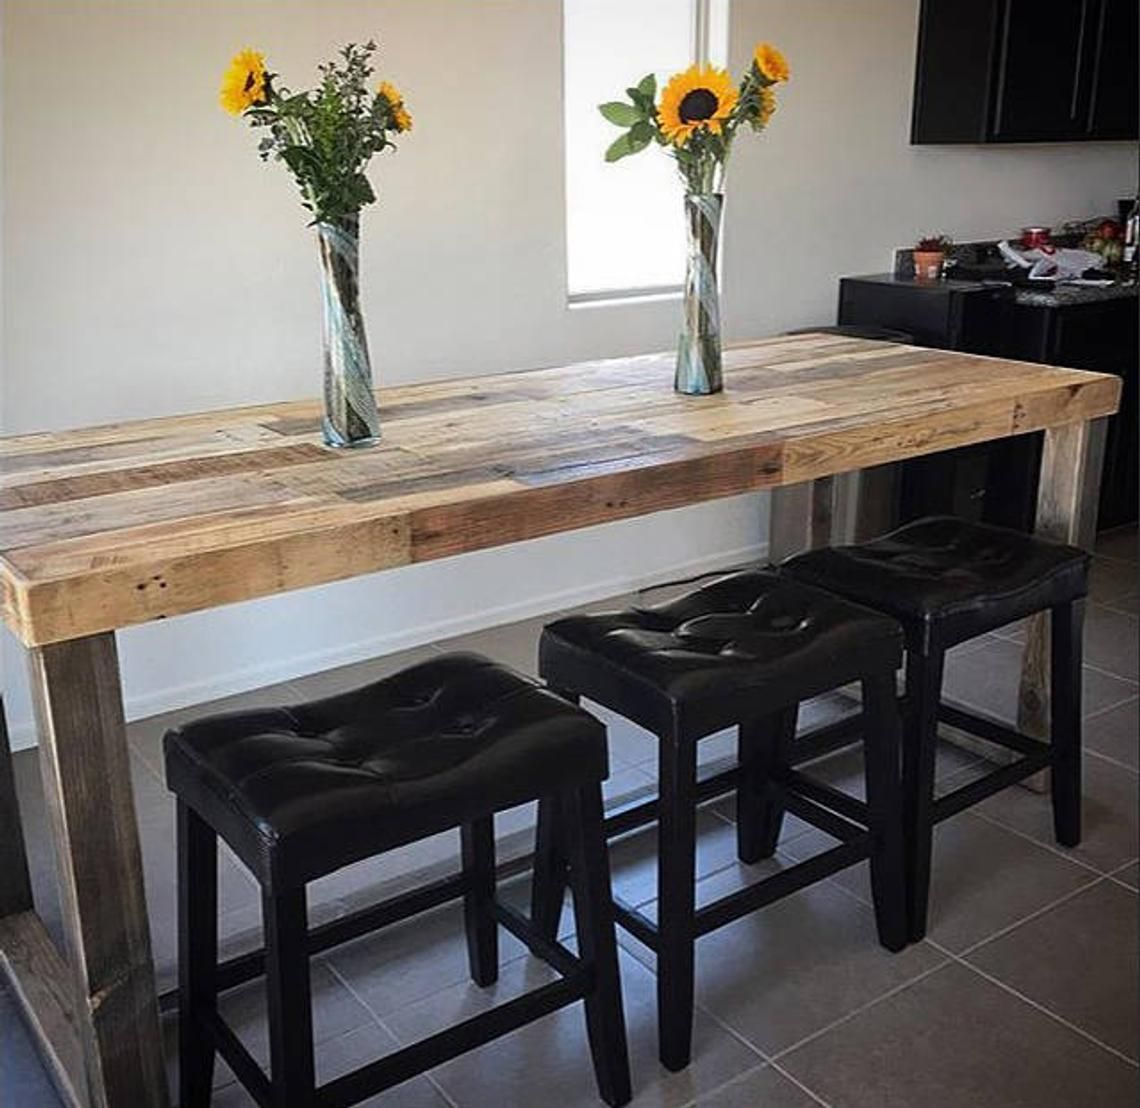 Reclaimed Wood Bar Table Restaurant Counter Community Communal Rustic Cafe Conference Office Pub High Top Long Thin Caster Wheels Power Usb In 2020 Bar Dining Table Reclaimed Wood Bars Wood Bar Table